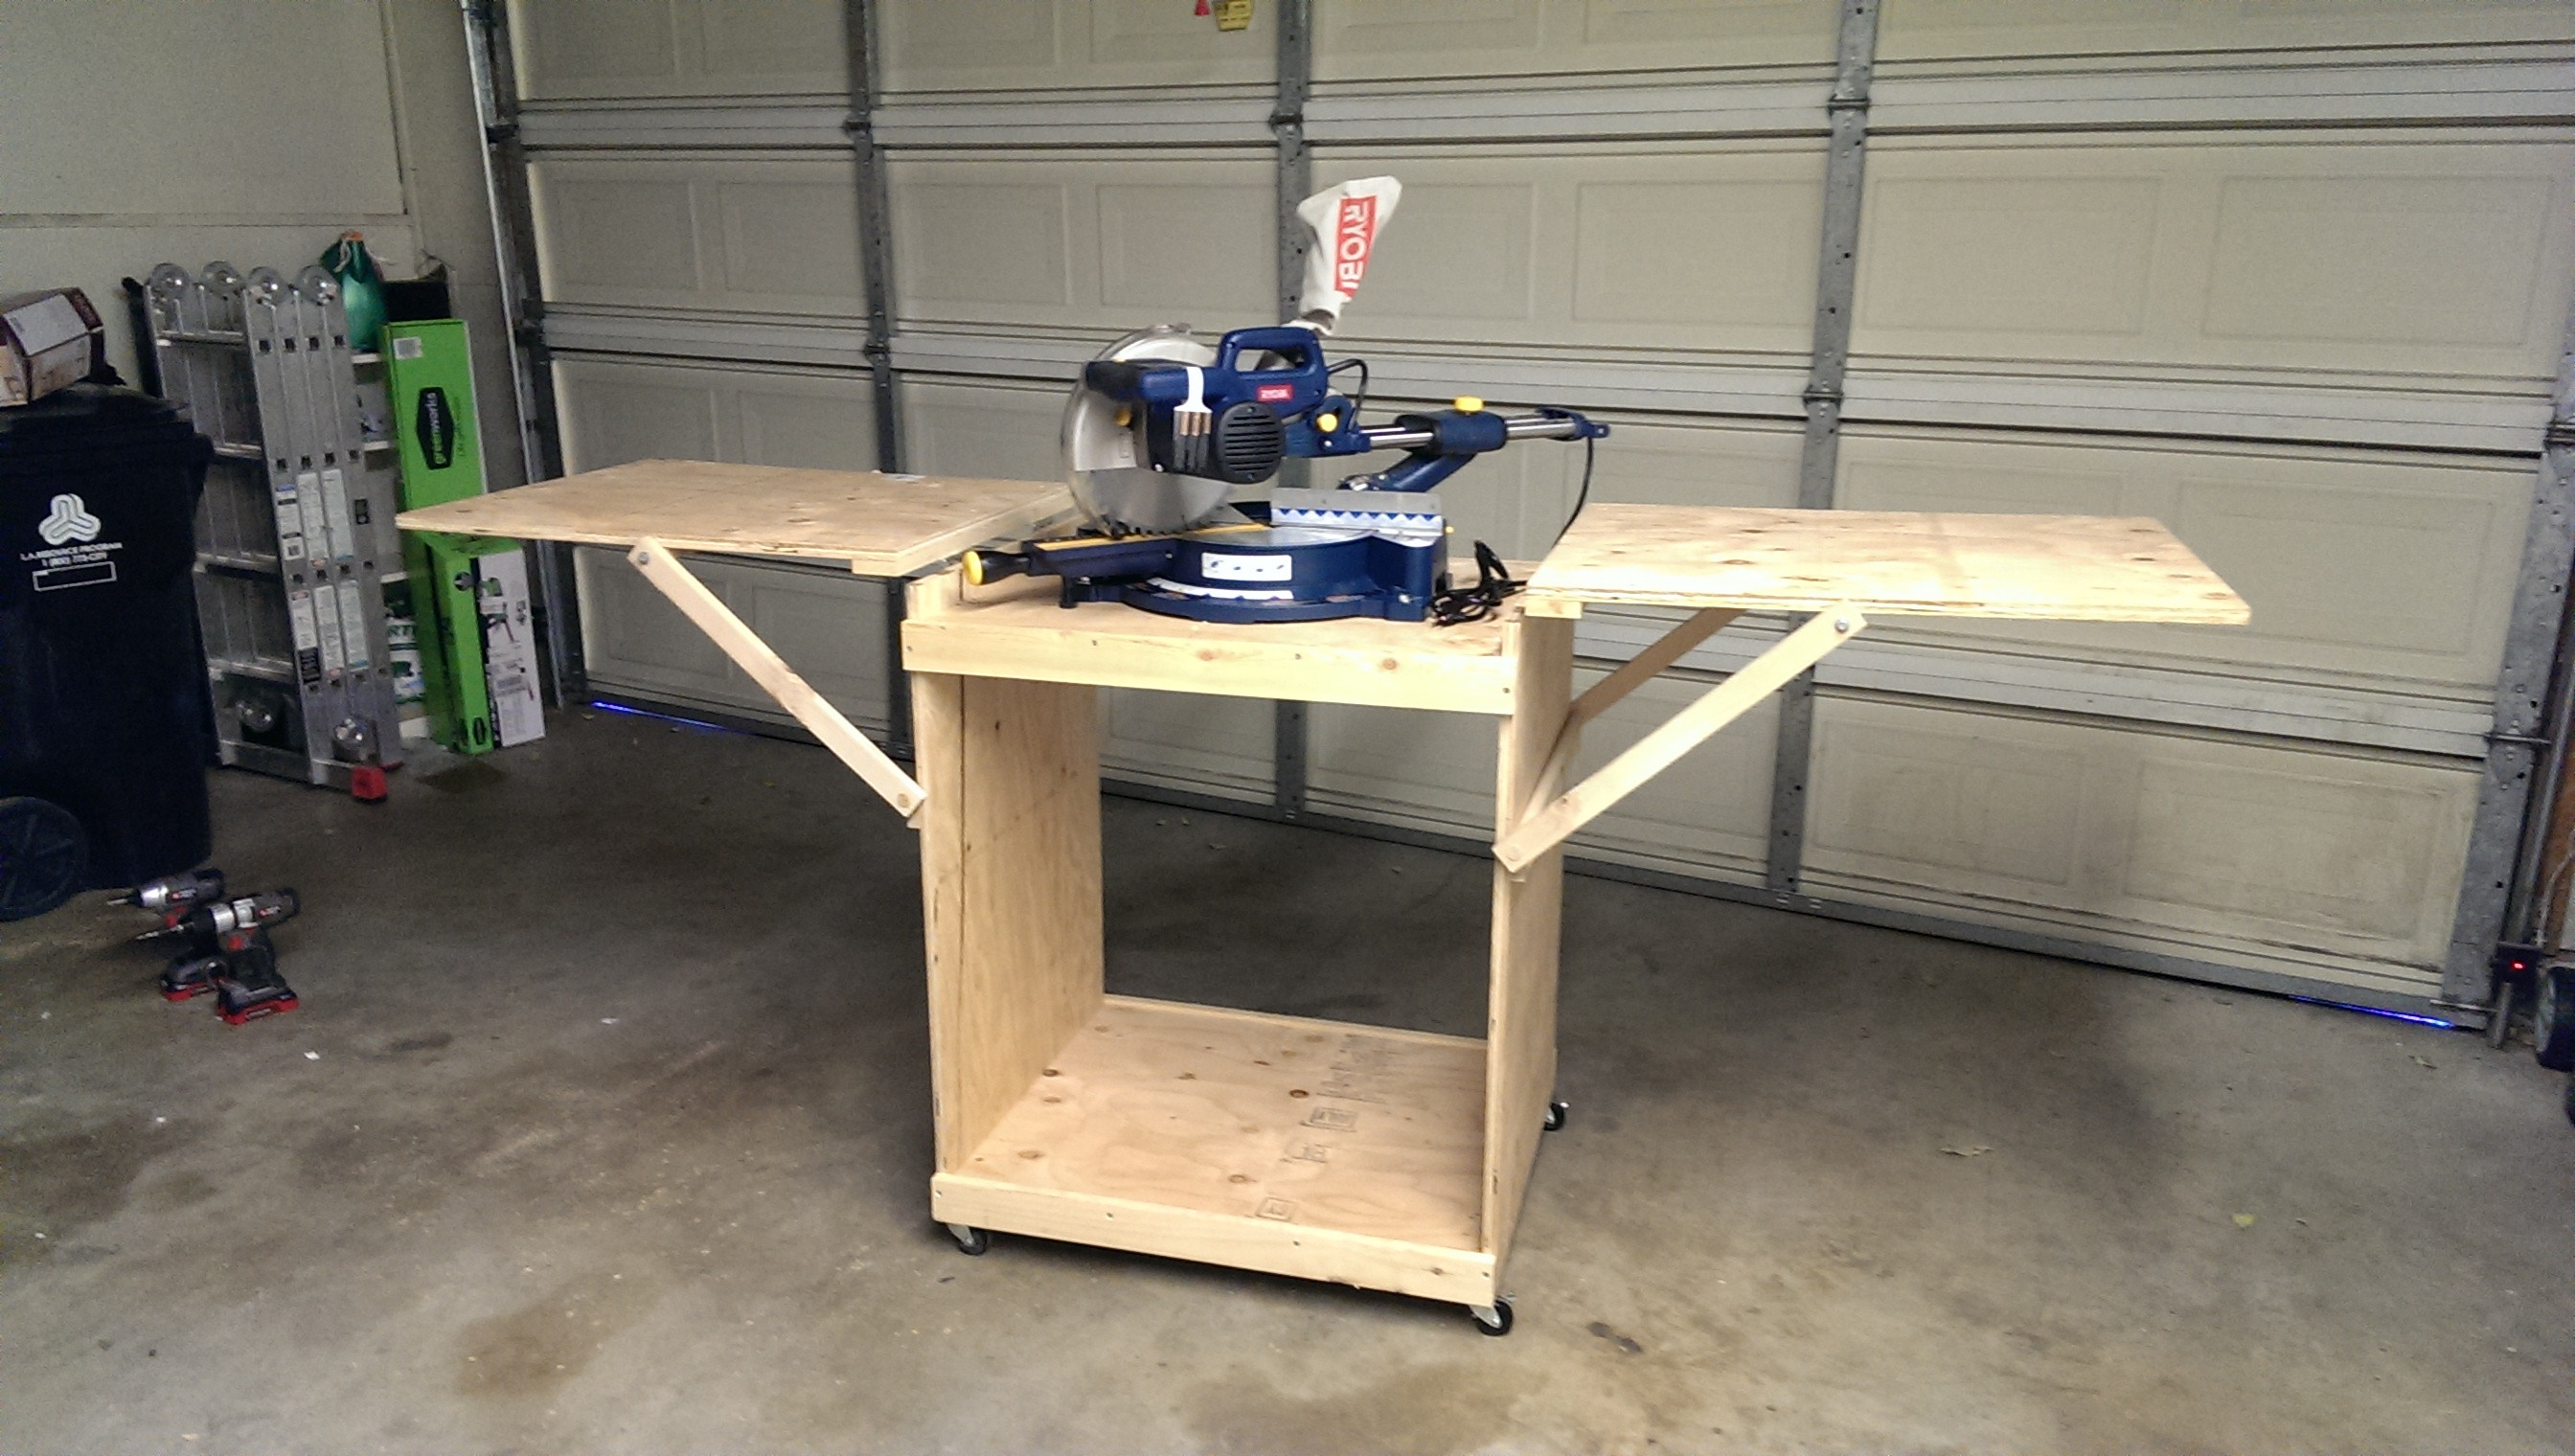 Best ideas about DIY Table Saw Plans . Save or Pin 22 DIY Miter Saw Table Plans Now.